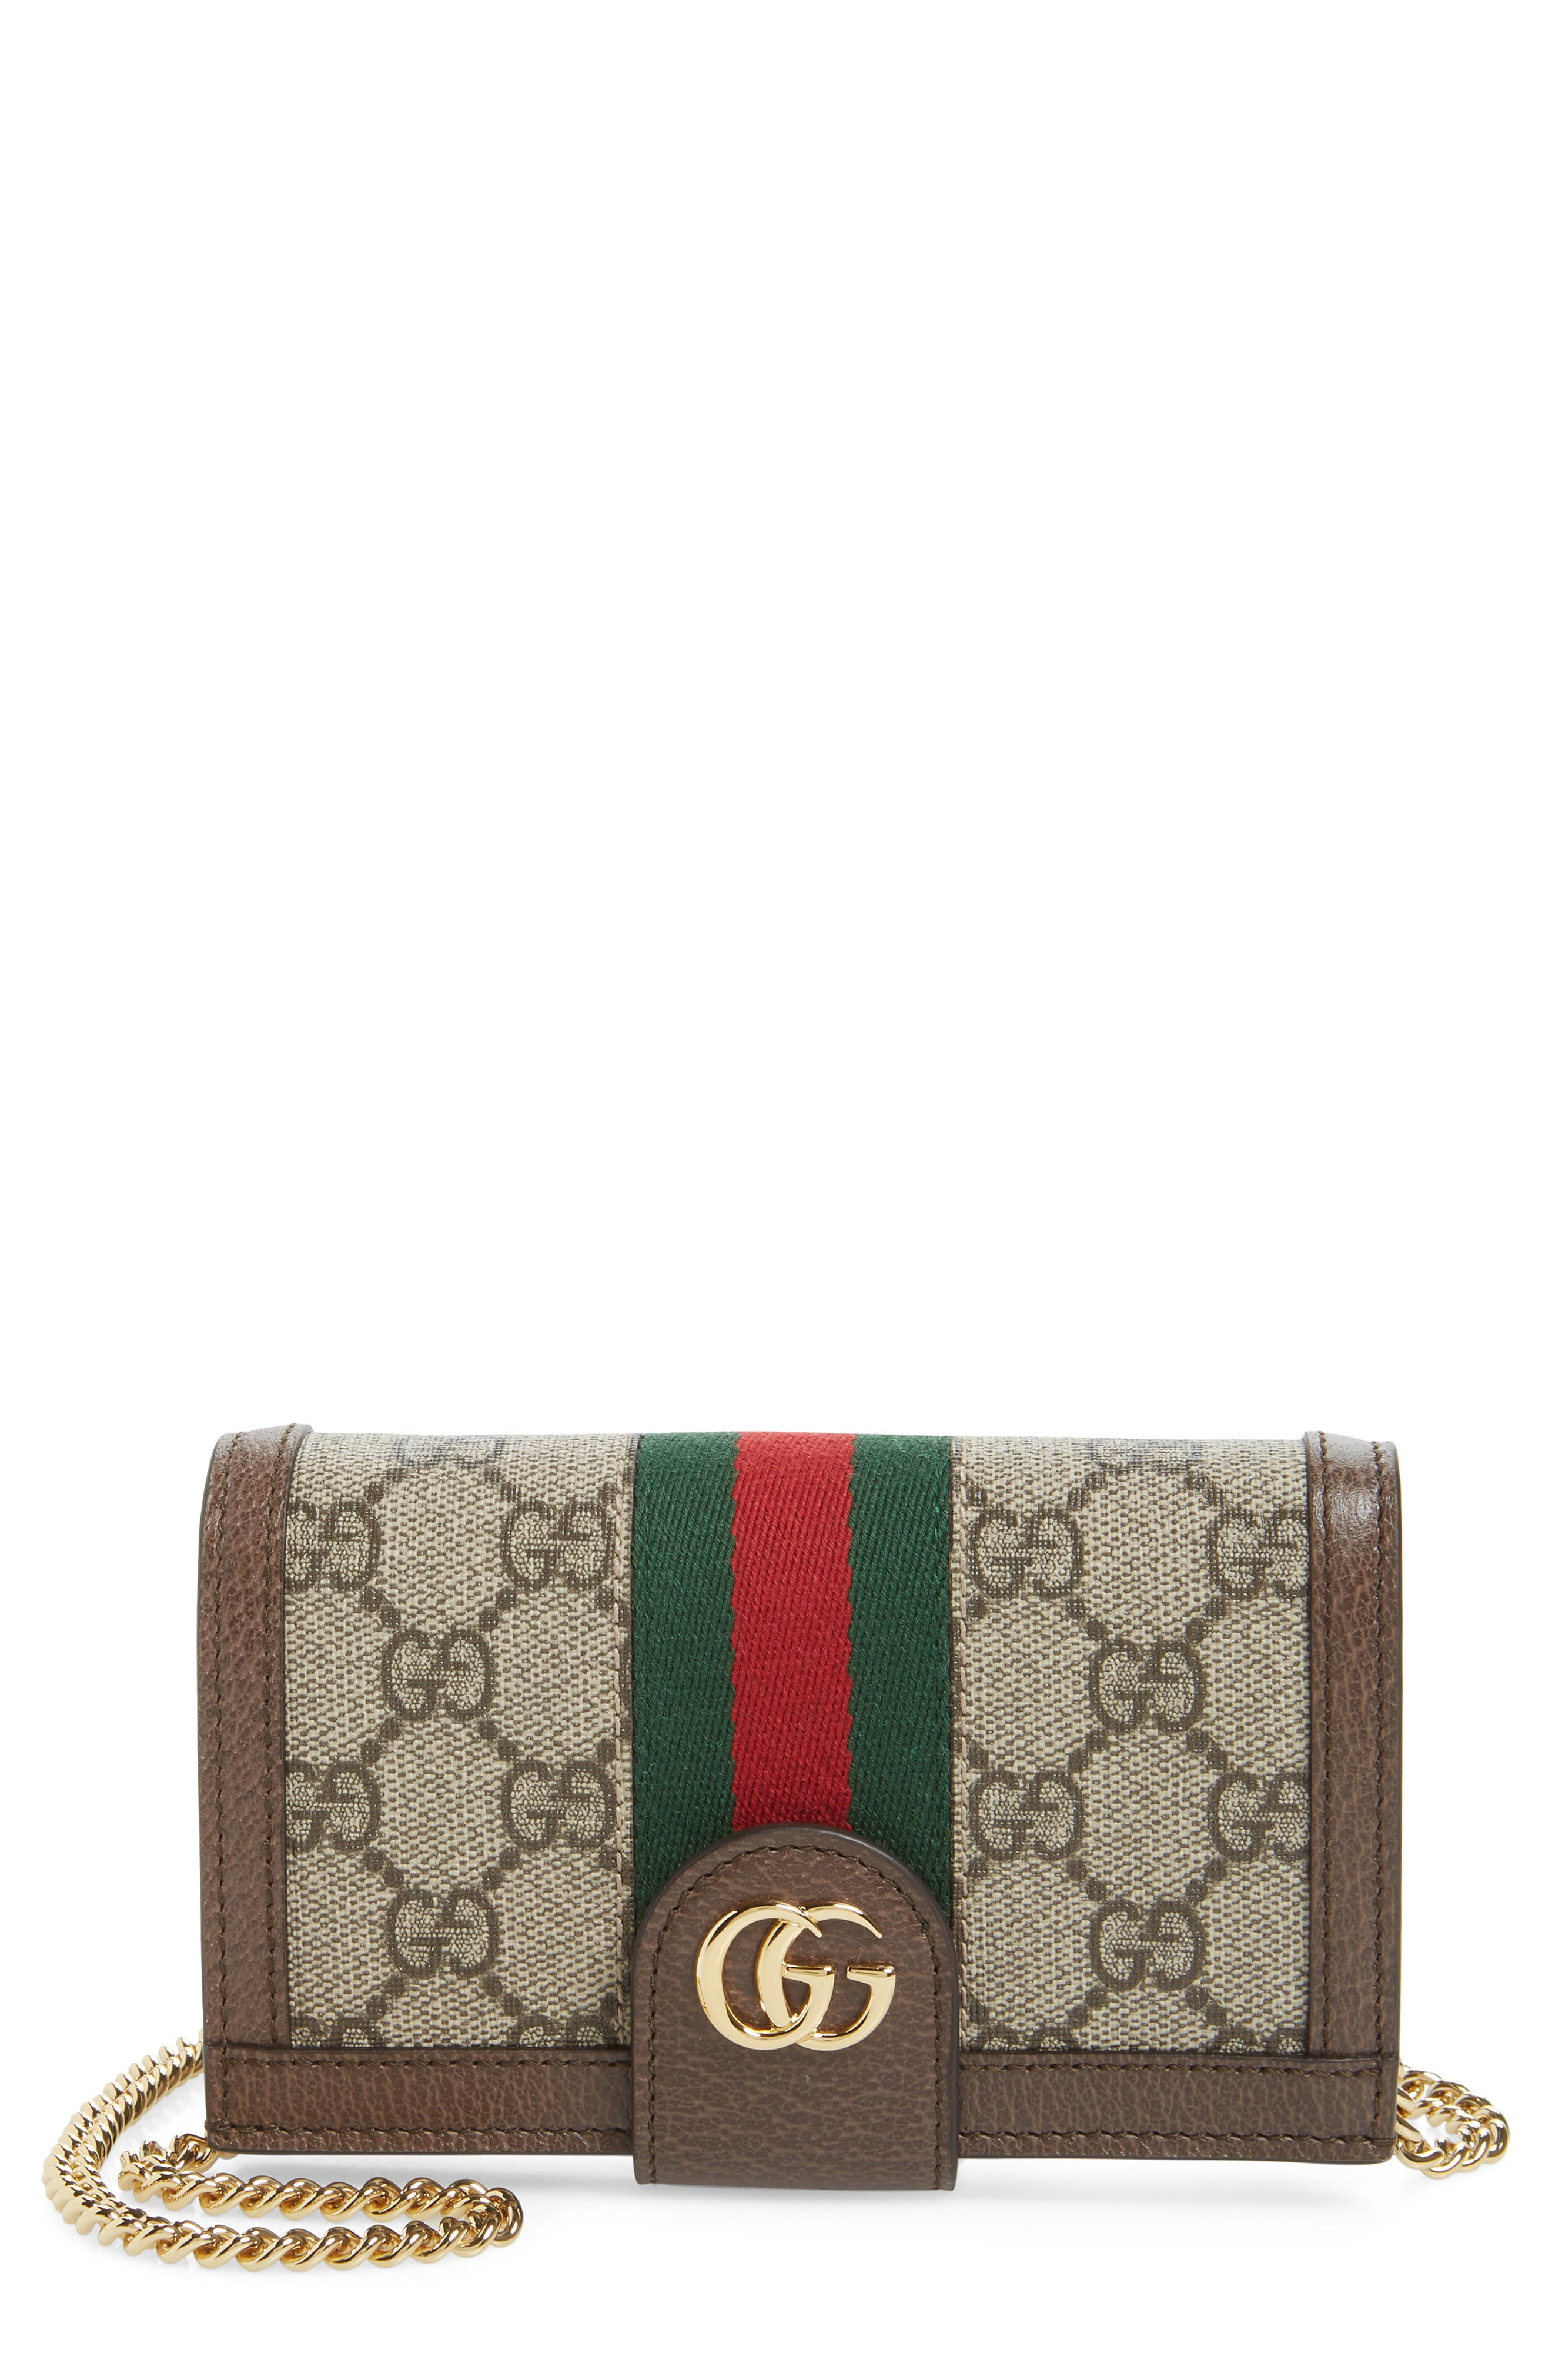 37adceea4c6 Gucci Cell Phone Cases